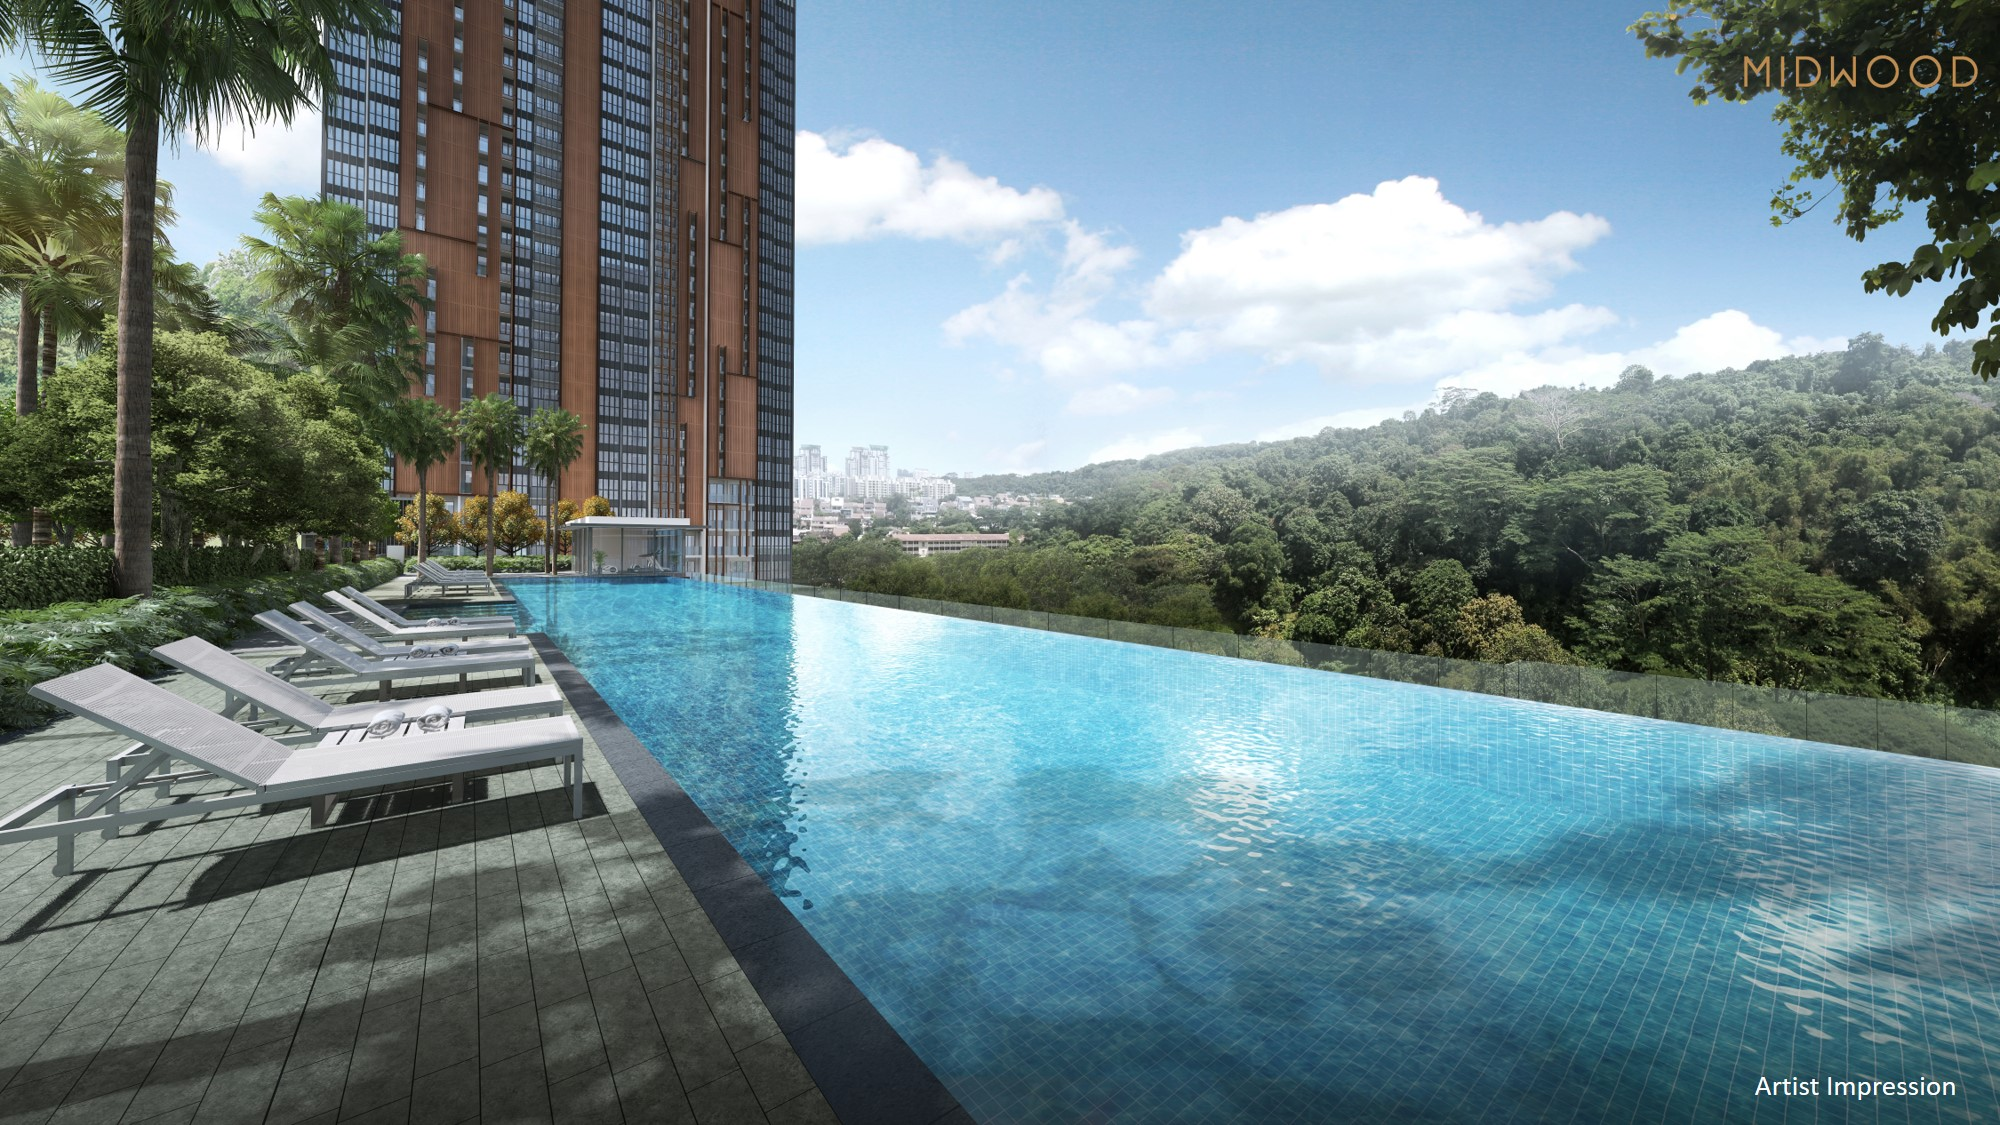 midwood-condo-50m-infinity-pool-hillview-mrt-singapore